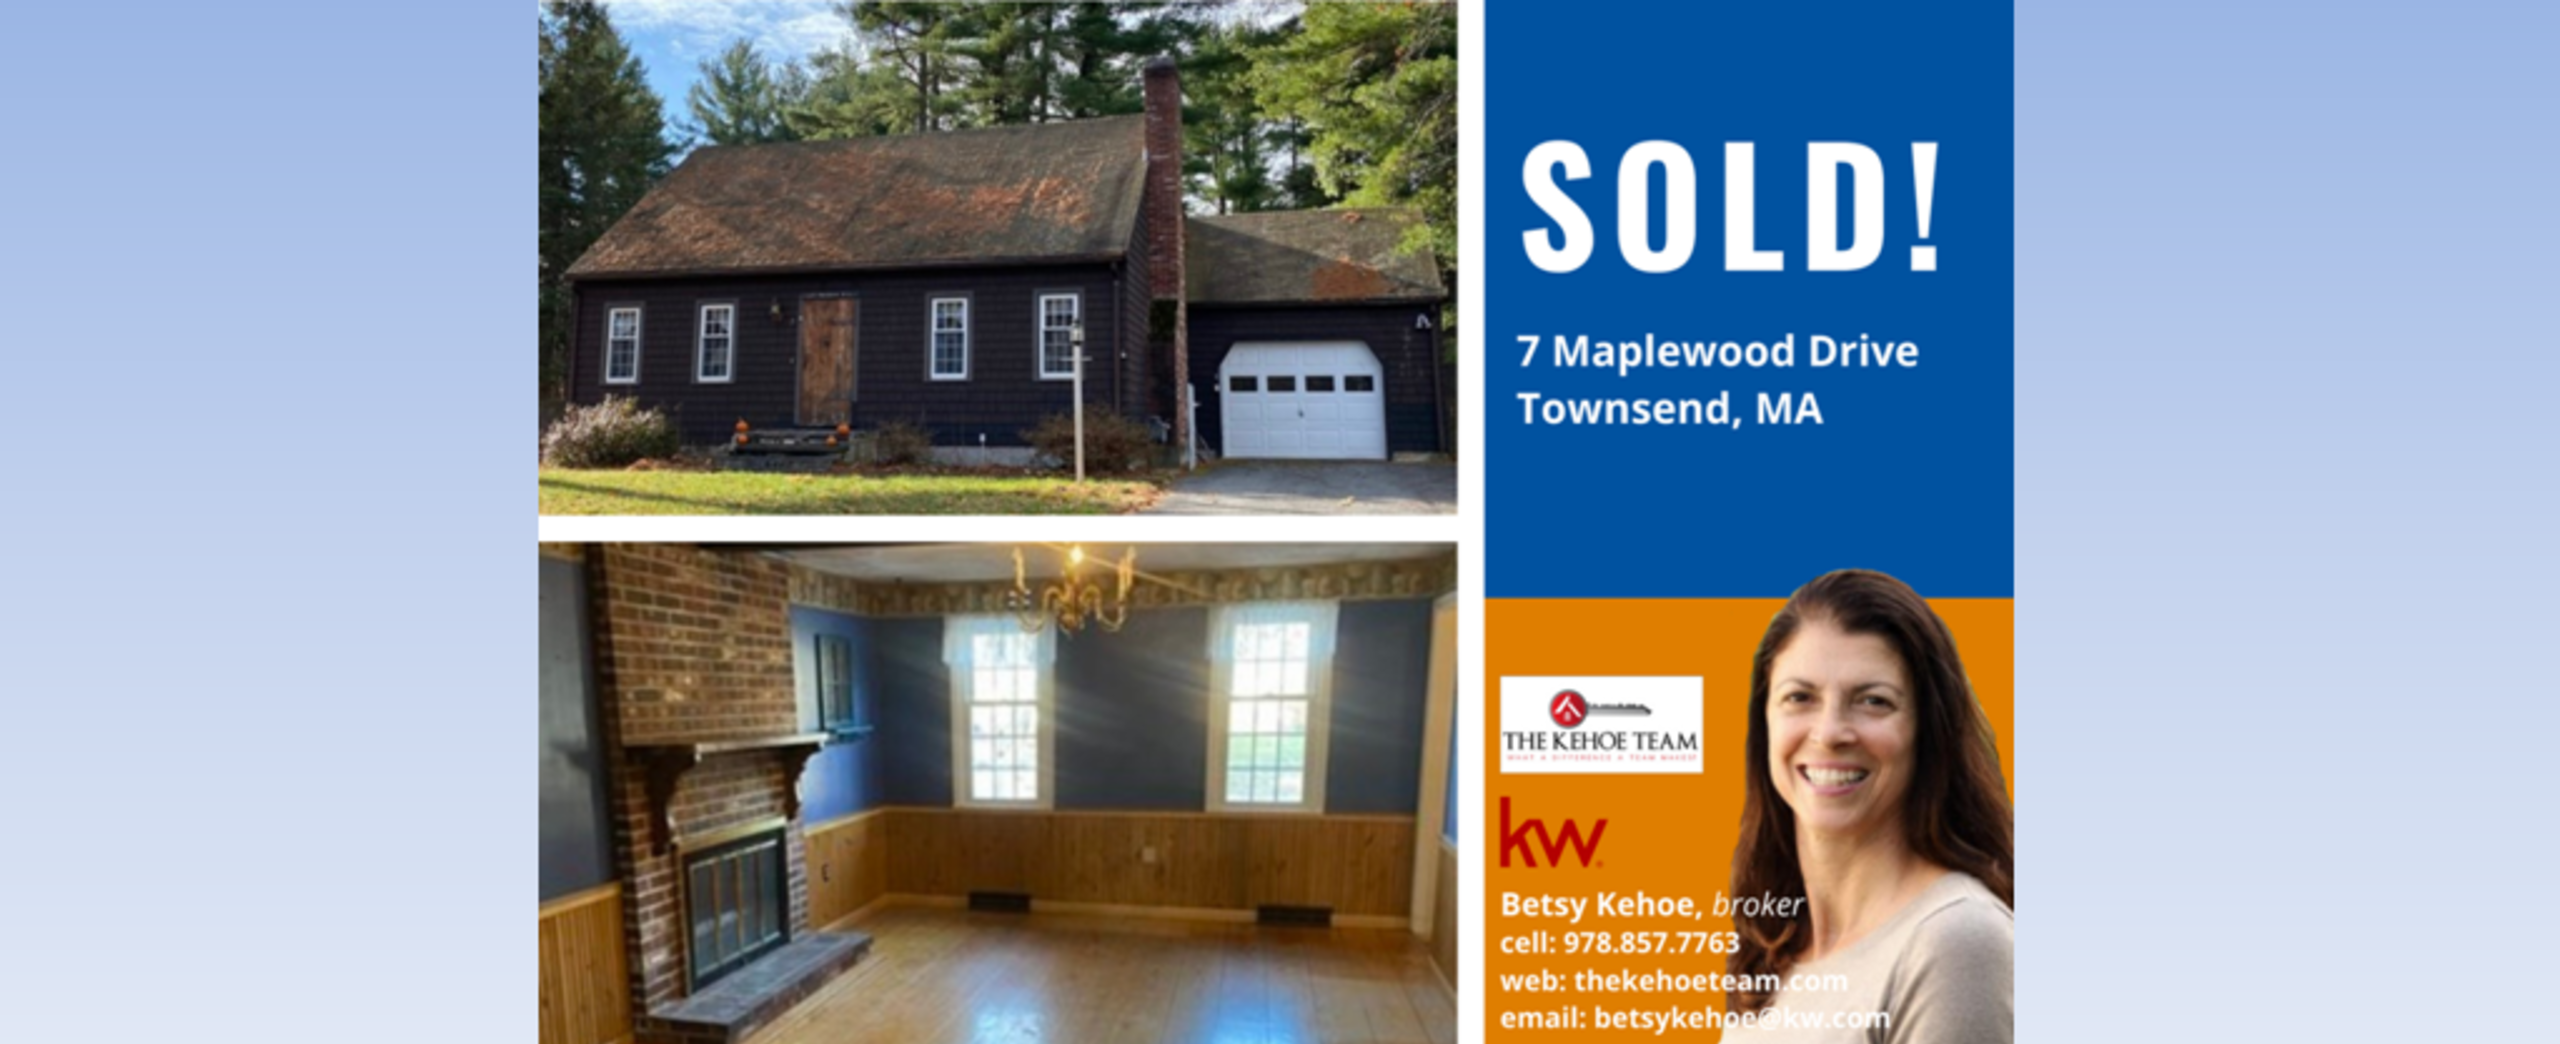 SOLD! - 7 MAPLEWOOD DRIVE TOWNSEND MA